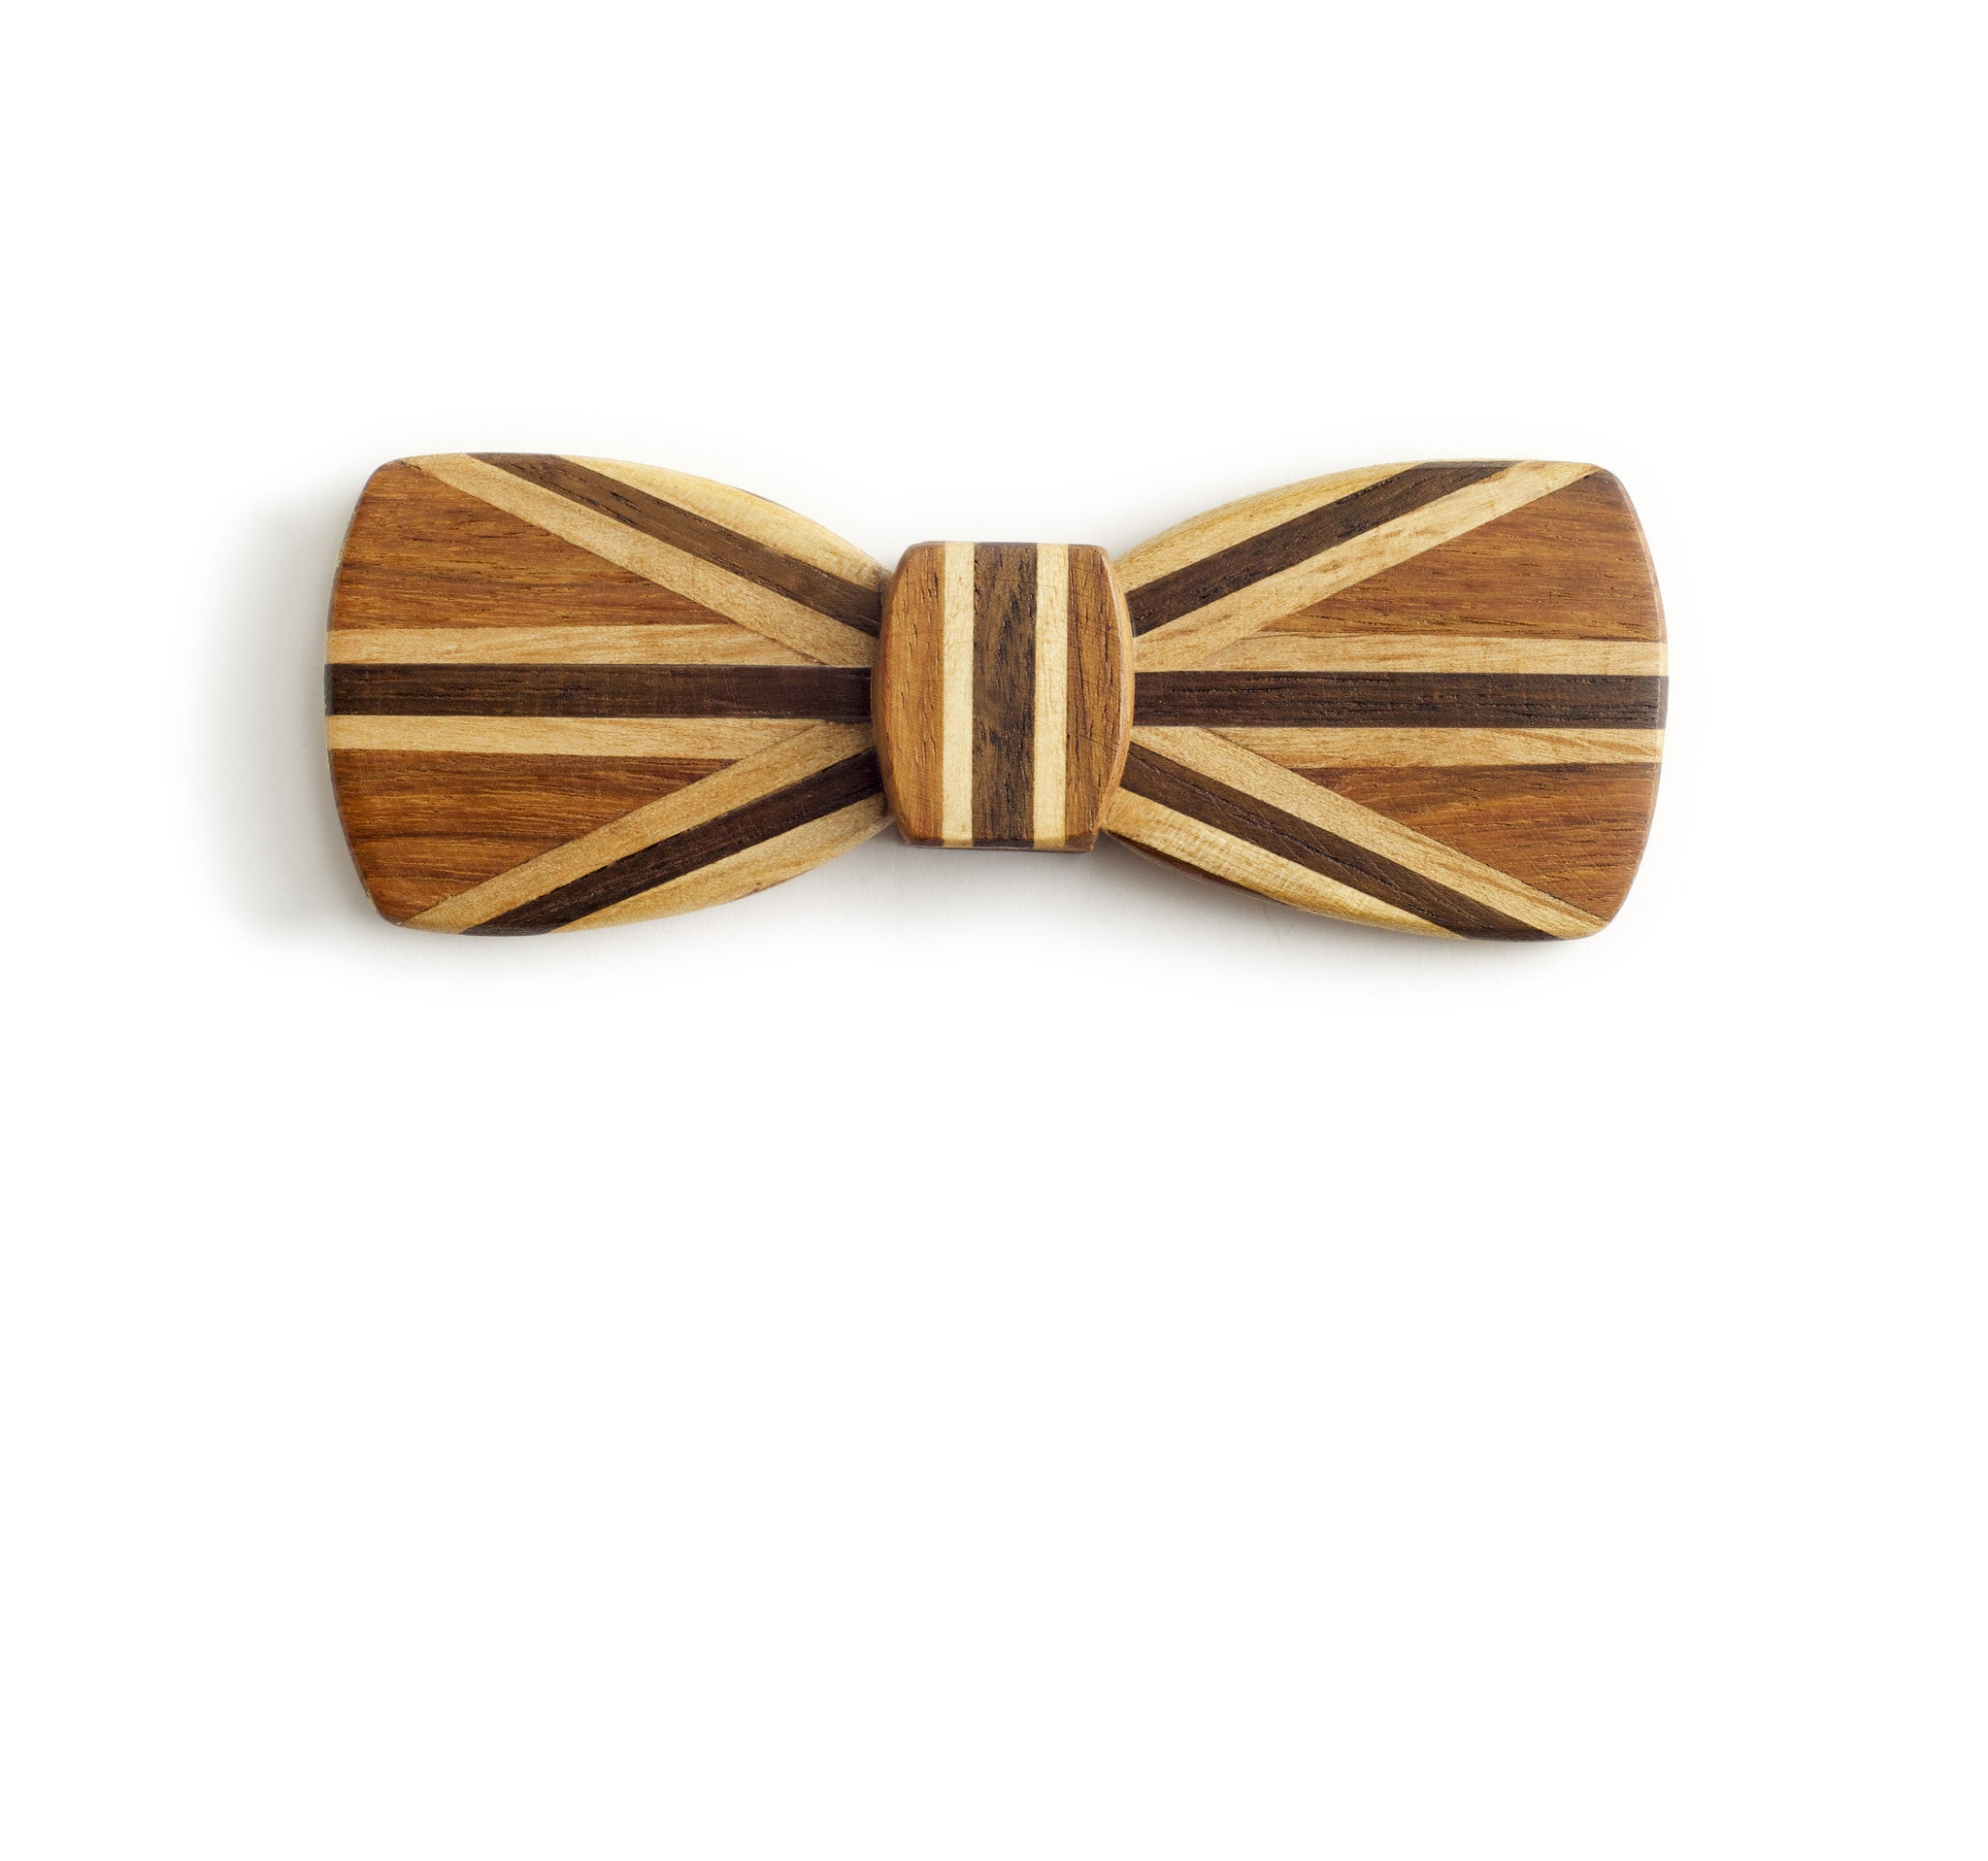 Hipster Wood Bow Tie - Union Jack wooden bow tie unique original quirky gift for men shark tank